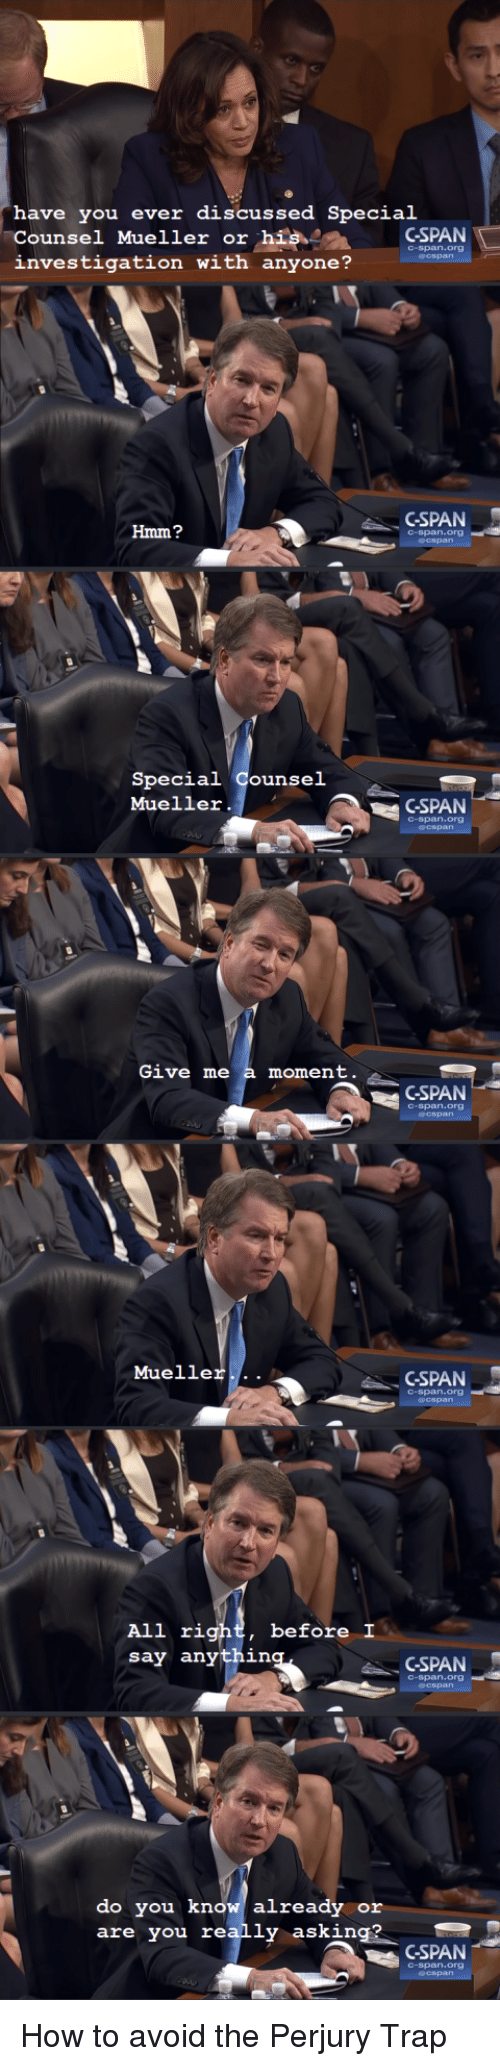 Trap, How To, and Asking: have you ever discussed Special  Counsel Mueller or hisCSPAN  investigation with anyone?  C-span.org  GSPAN  Hmm?  C-span.org  Special Counsel  Mueller.  GSPAN  C-span.org  Give me a moment  GSPAN  C-span.org  Mueller...  GSPAN  C-span.org  before I  All rig  say anythin  CSPAN  C-span.org  do you know already or  are you really asking?  CSPAN  C-span.org How to avoid the Perjury Trap